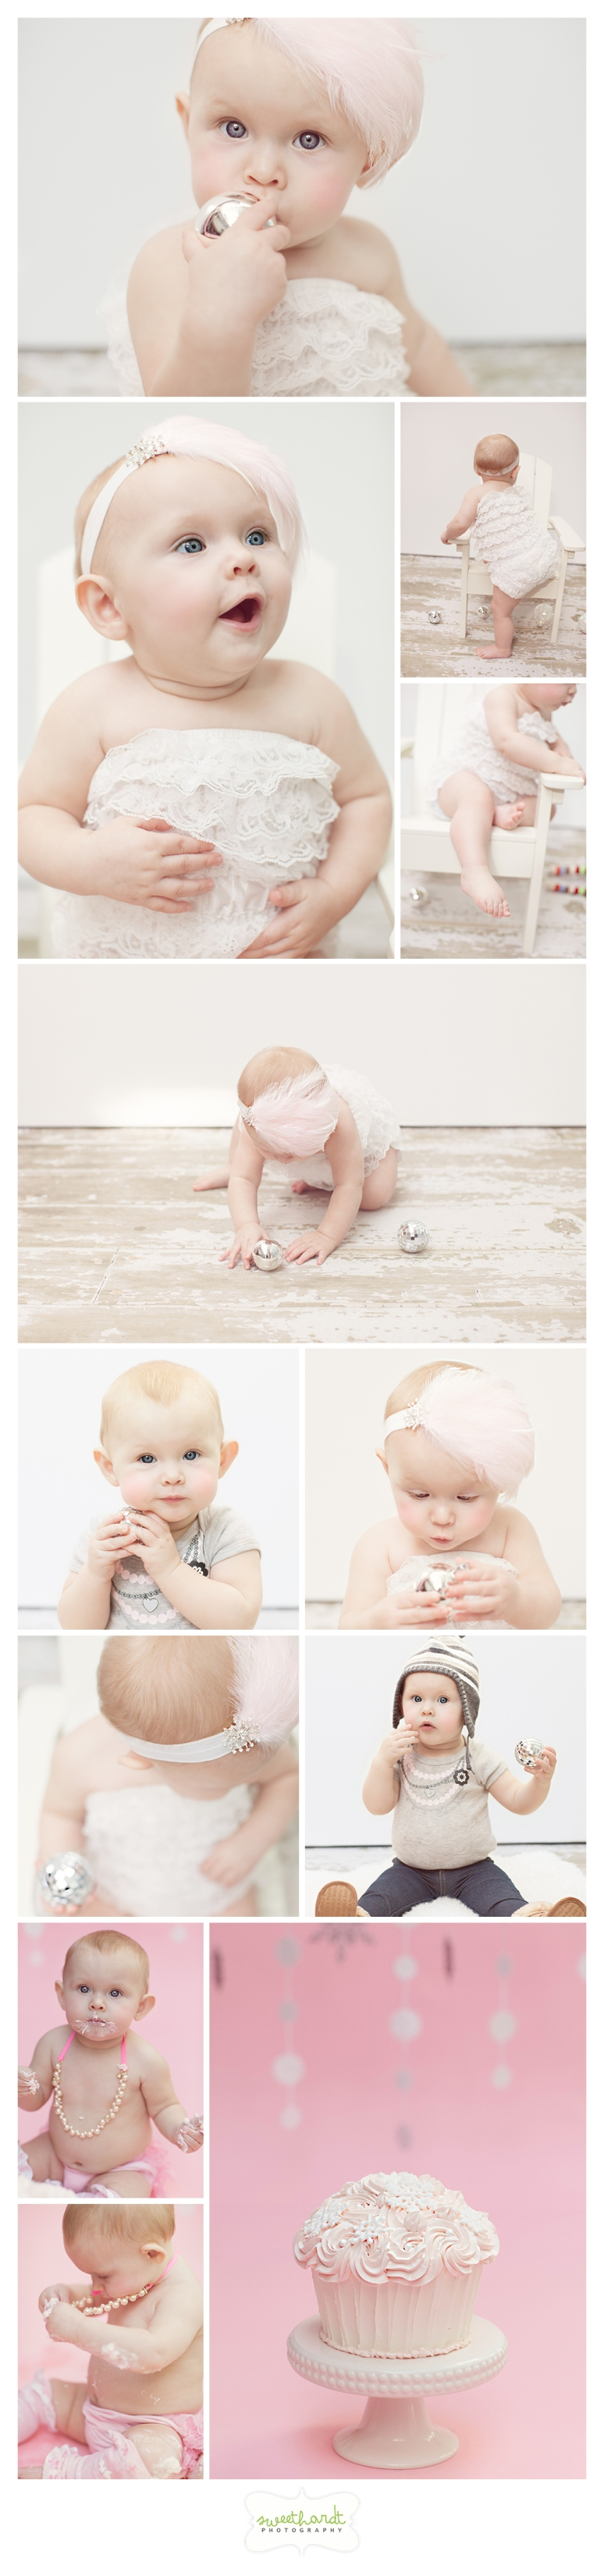 Cake Smash Session | Lillie